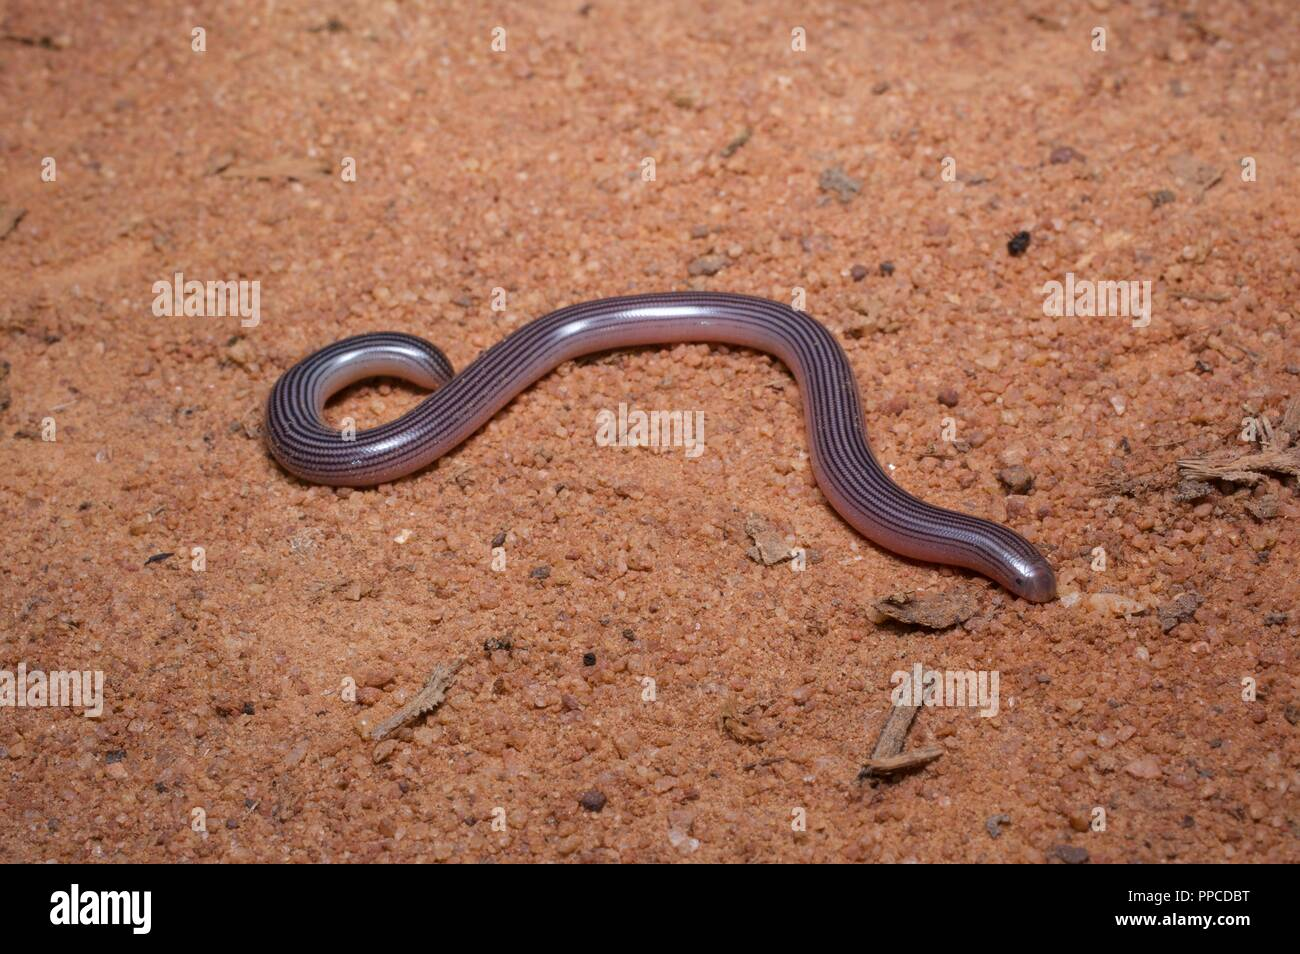 A worm-like Spotted Blind Snake ​(Afrotyphlops punctatus) on a dirt road at night in Bobiri Forest Reserve, Ghana, West Africa - Stock Image